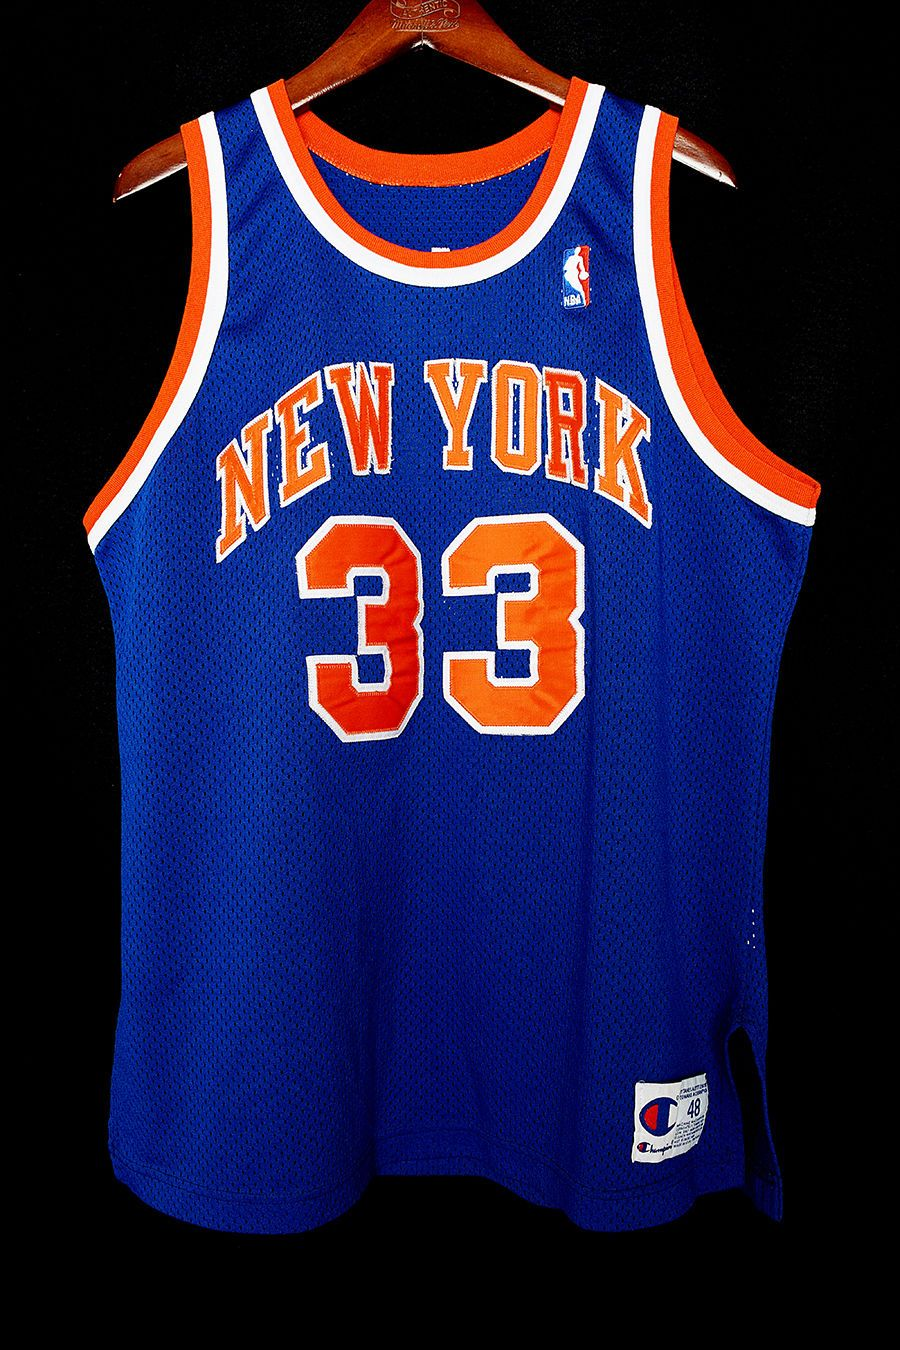 competitive price 99a31 8ace2 100% Authentic Patrick Ewing Champion NY Knicks Jersey Size ...